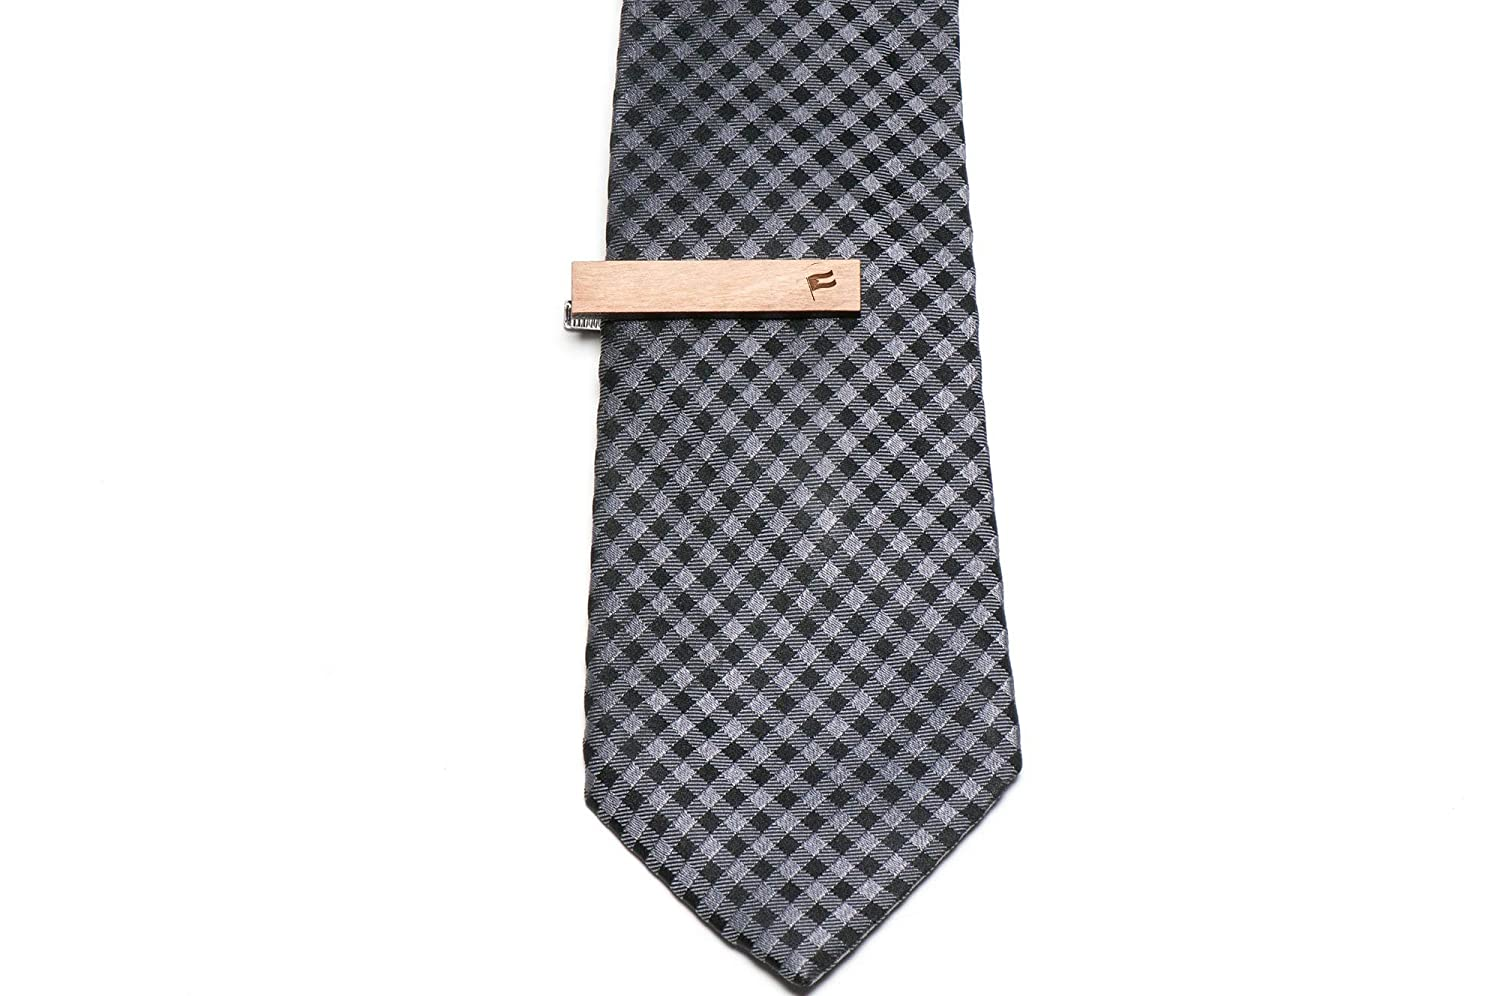 Wooden Accessories Company Wooden Tie Clips with Laser Engraved Flag of Sudan Design Cherry Wood Tie Bar Engraved in The USA